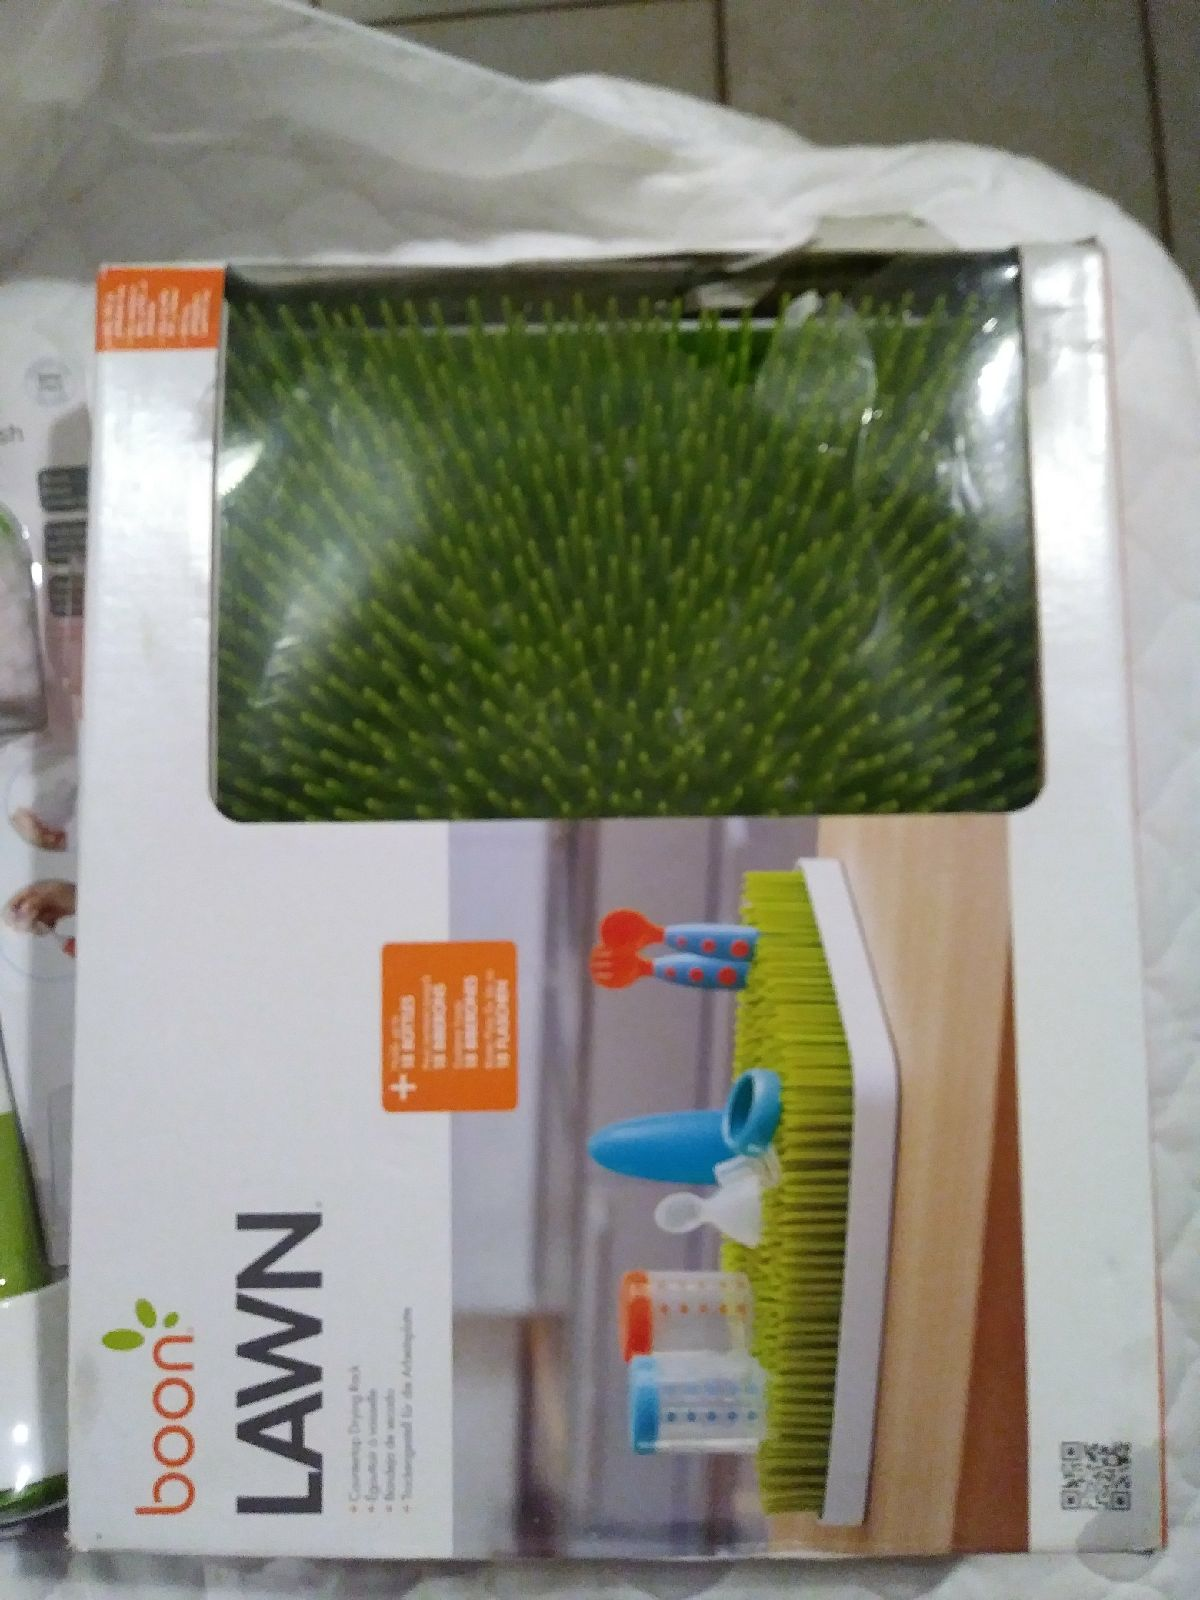 Boon Lawn Drying Rack and Bottle Brush